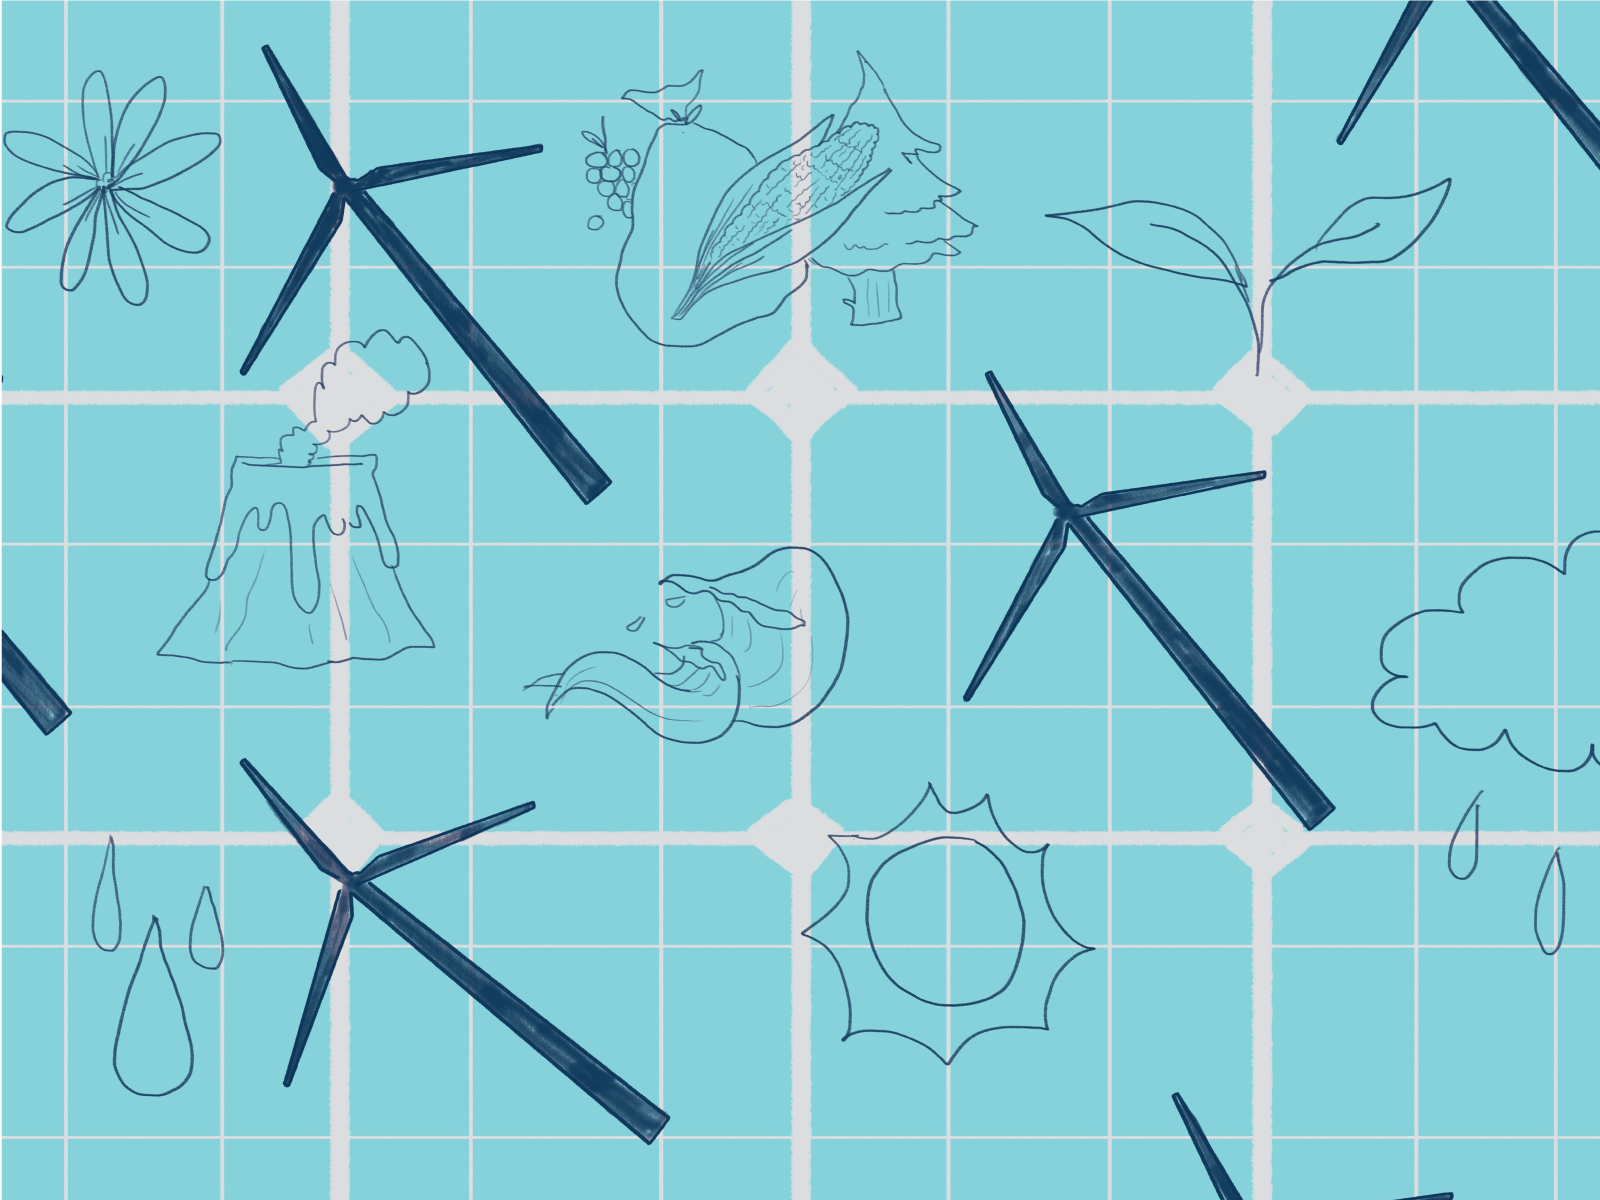 Illustration of wind turbines and nature on a blue grid background.